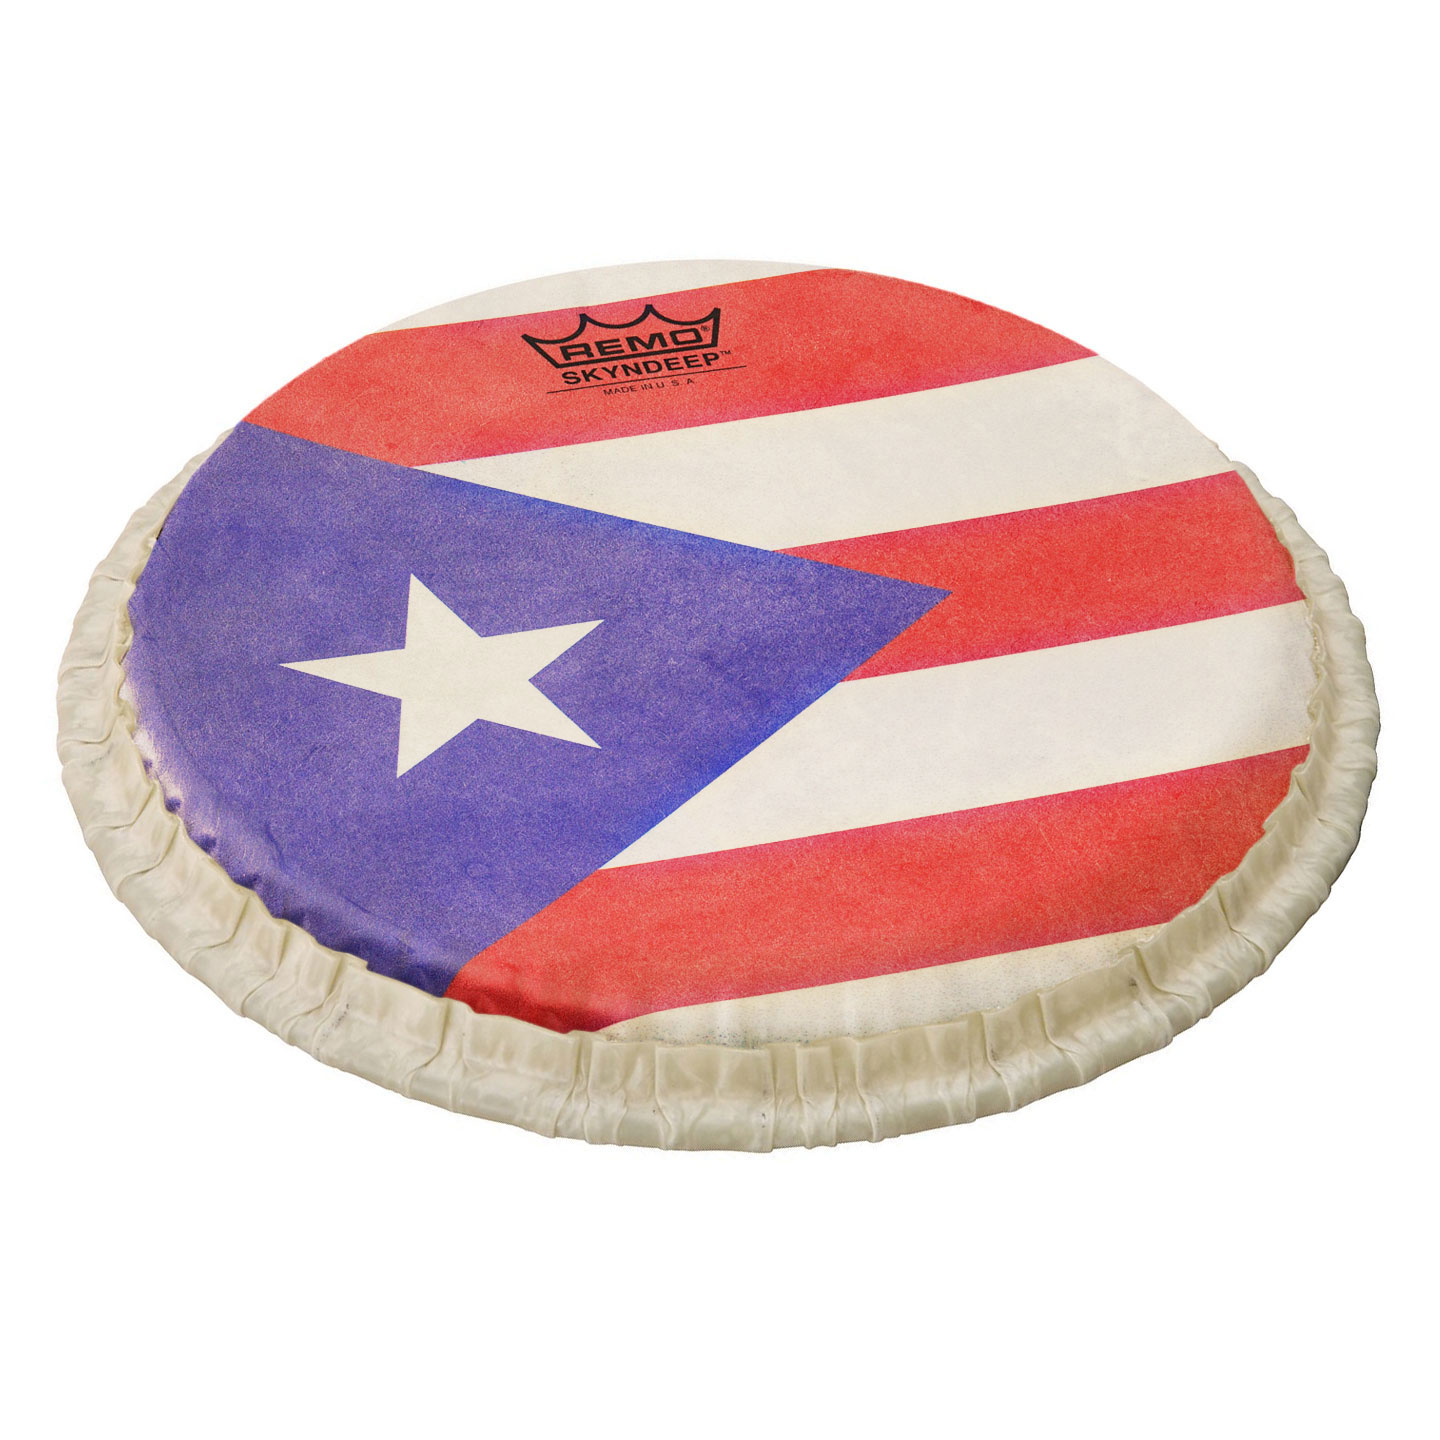 """Remo 11.06"""" Tucked Skyndeep Conga Drum Head with Puerto Rican Flag Graphic"""